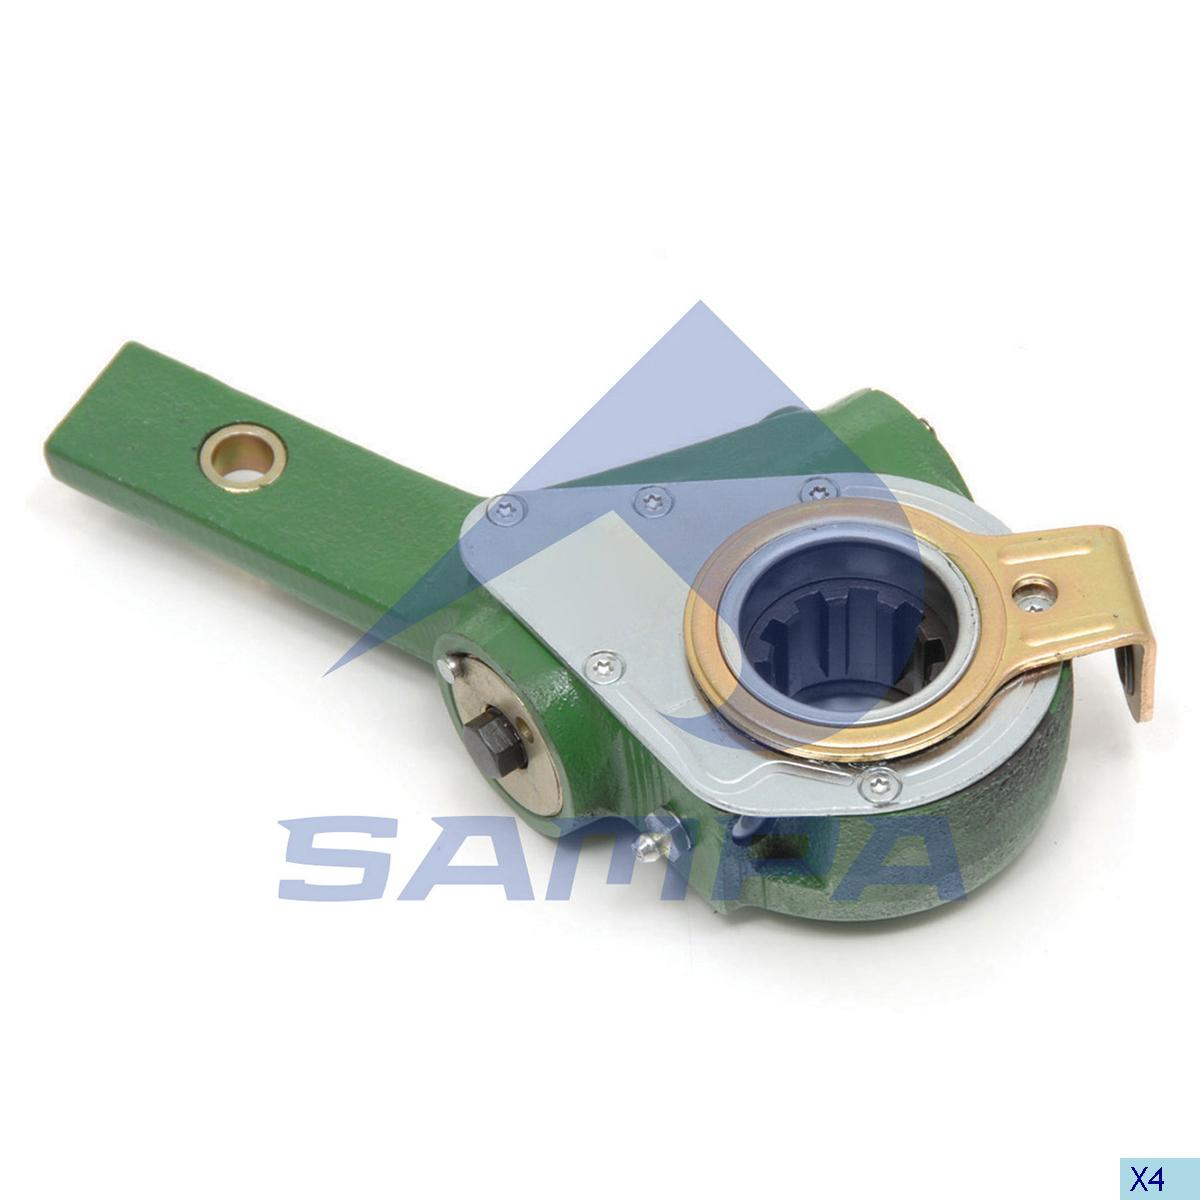 Brake Slack Adjuster, Volvo, Brake